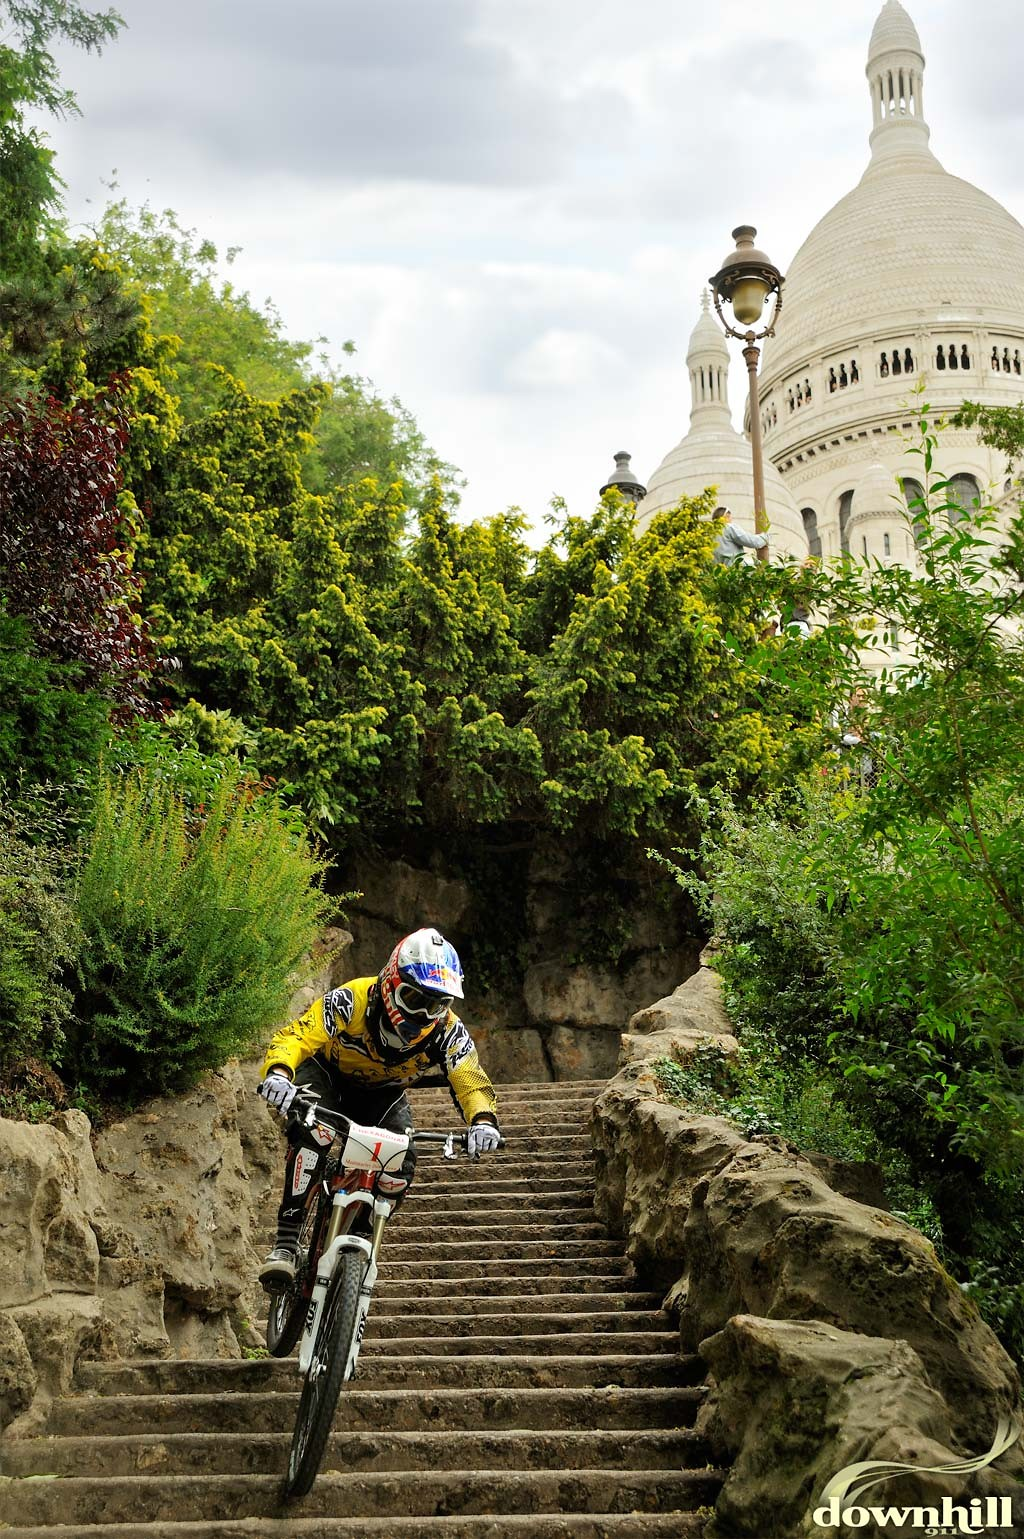 DownTown-Montmartre-09 - downhill911 - Mountain Biking Pictures - Vital MTB